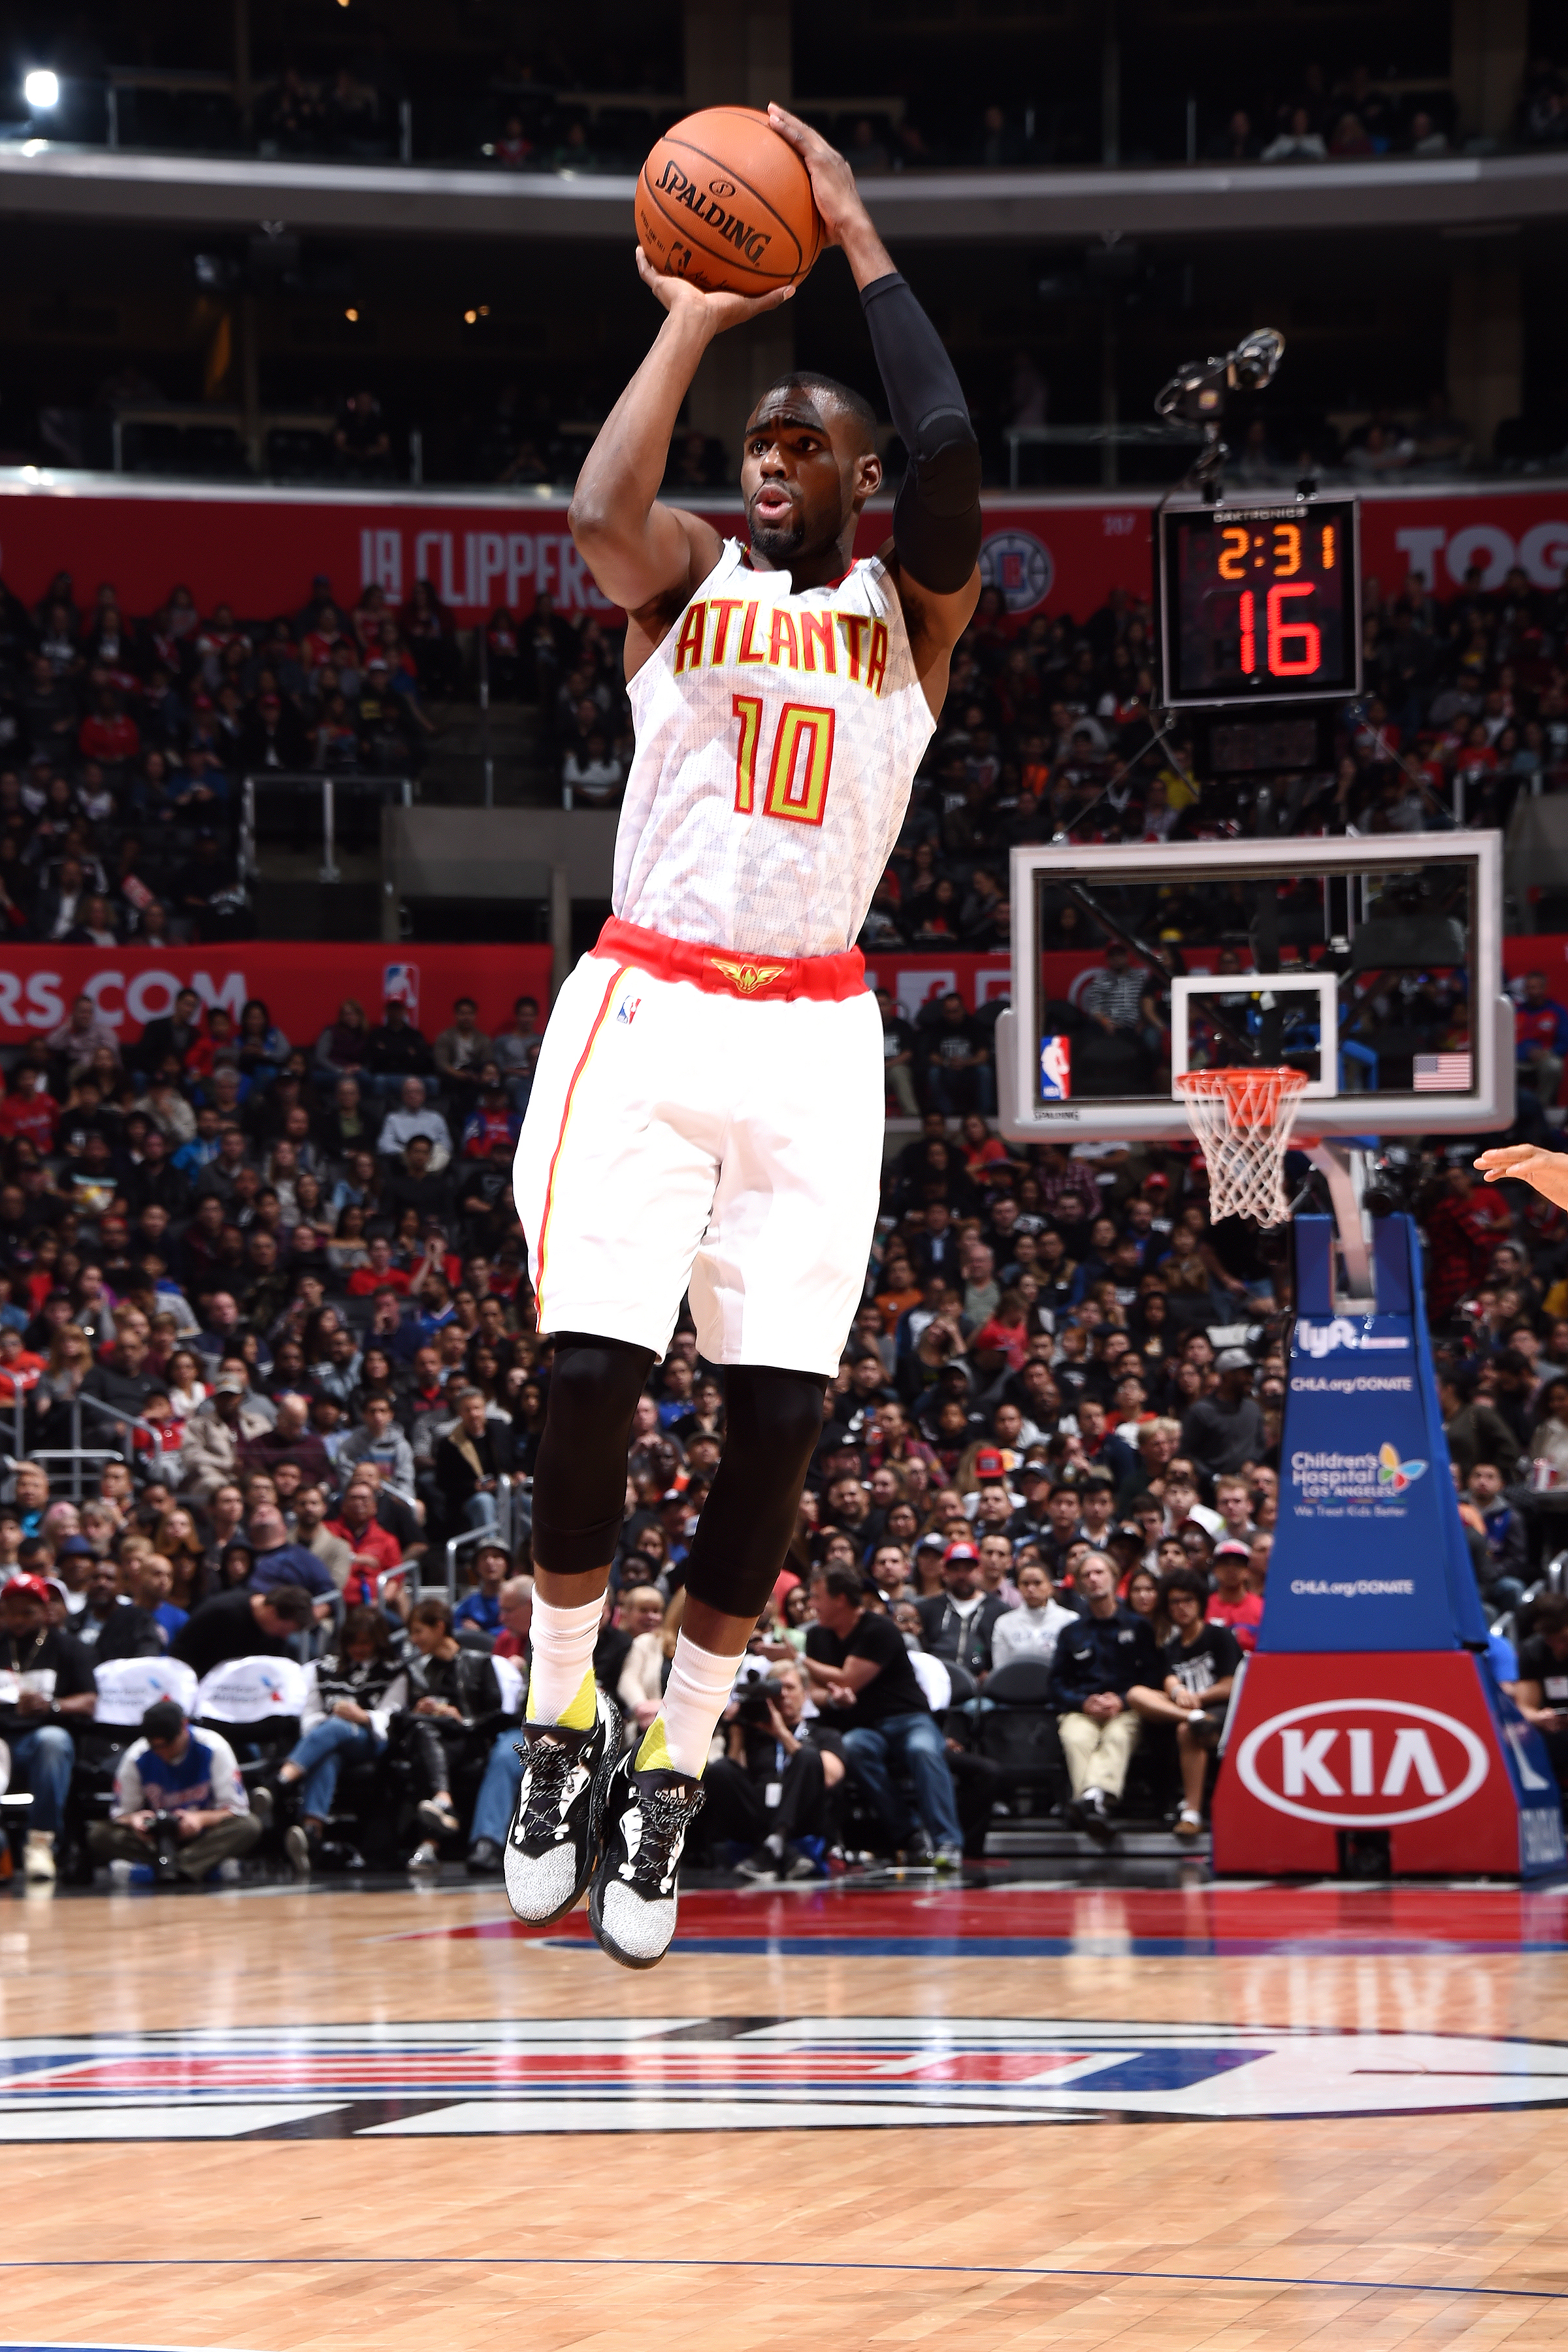 LOS ANGELES, CA - MARCH 5: Tim Hardaway Jr. #10 of the Atlanta Hawks shoots the ball during the game against the Los Angeles Clippers on March 5, 2016 at STAPLES Center in Los Angeles, California. (Photo by Andrew D. Bernstein/NBAE via Getty Images)